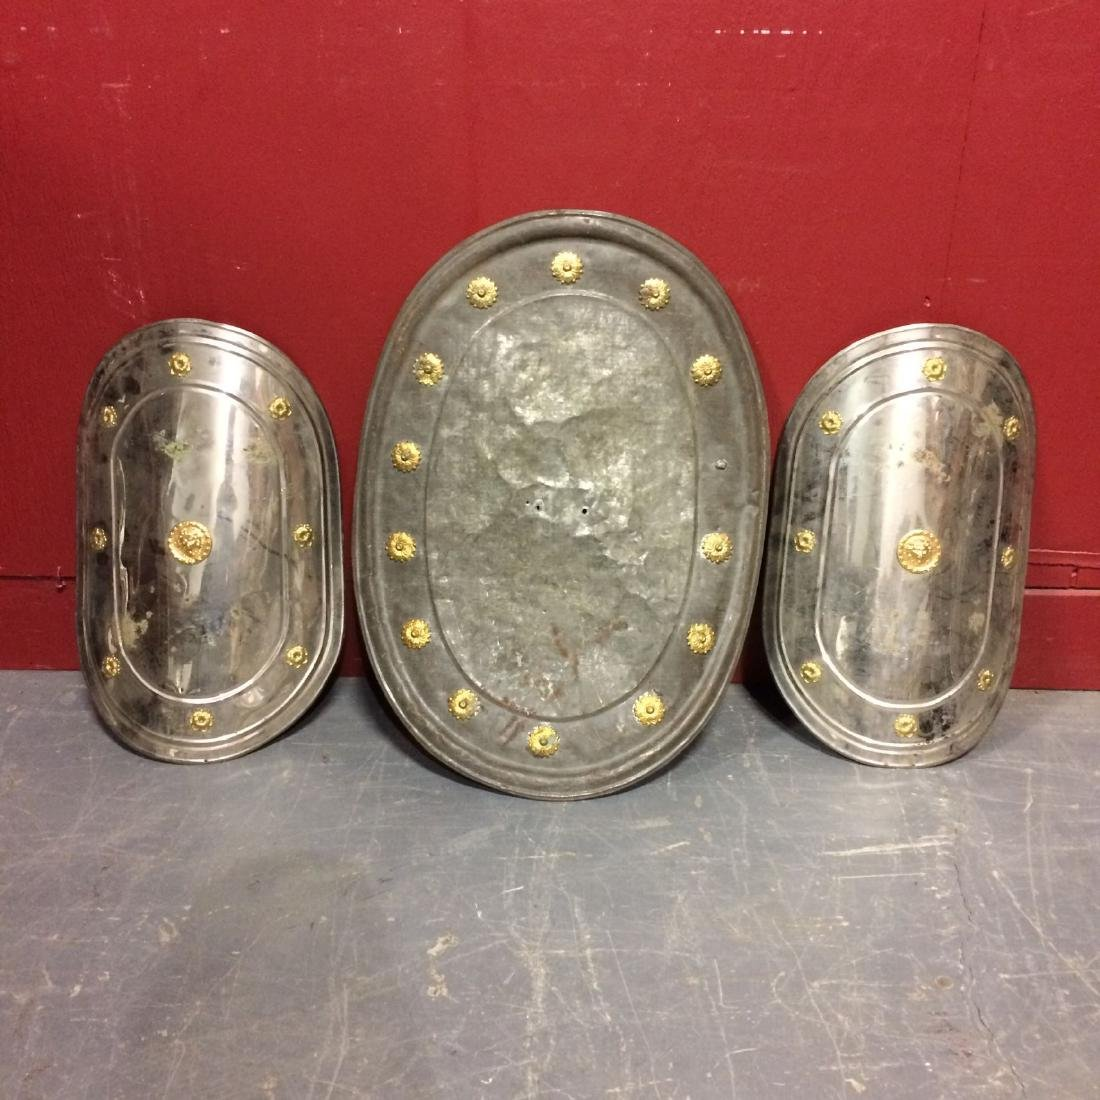 Three Odd Fellows Ceremonial Shields